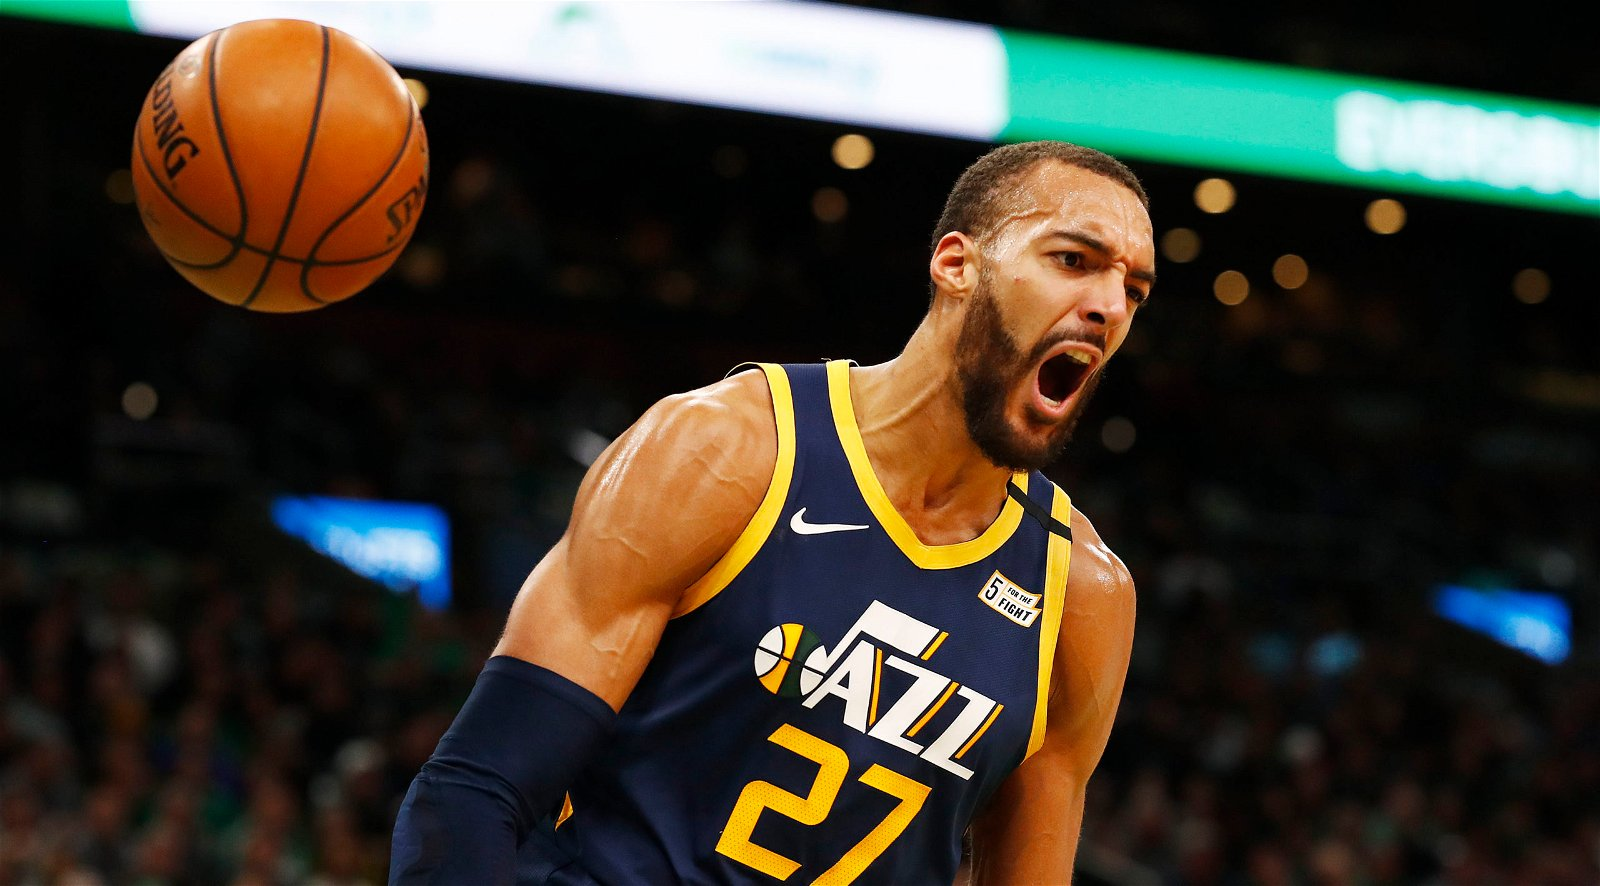 CROP Rudy Gobert GettyImages 1210887760 scaled 1